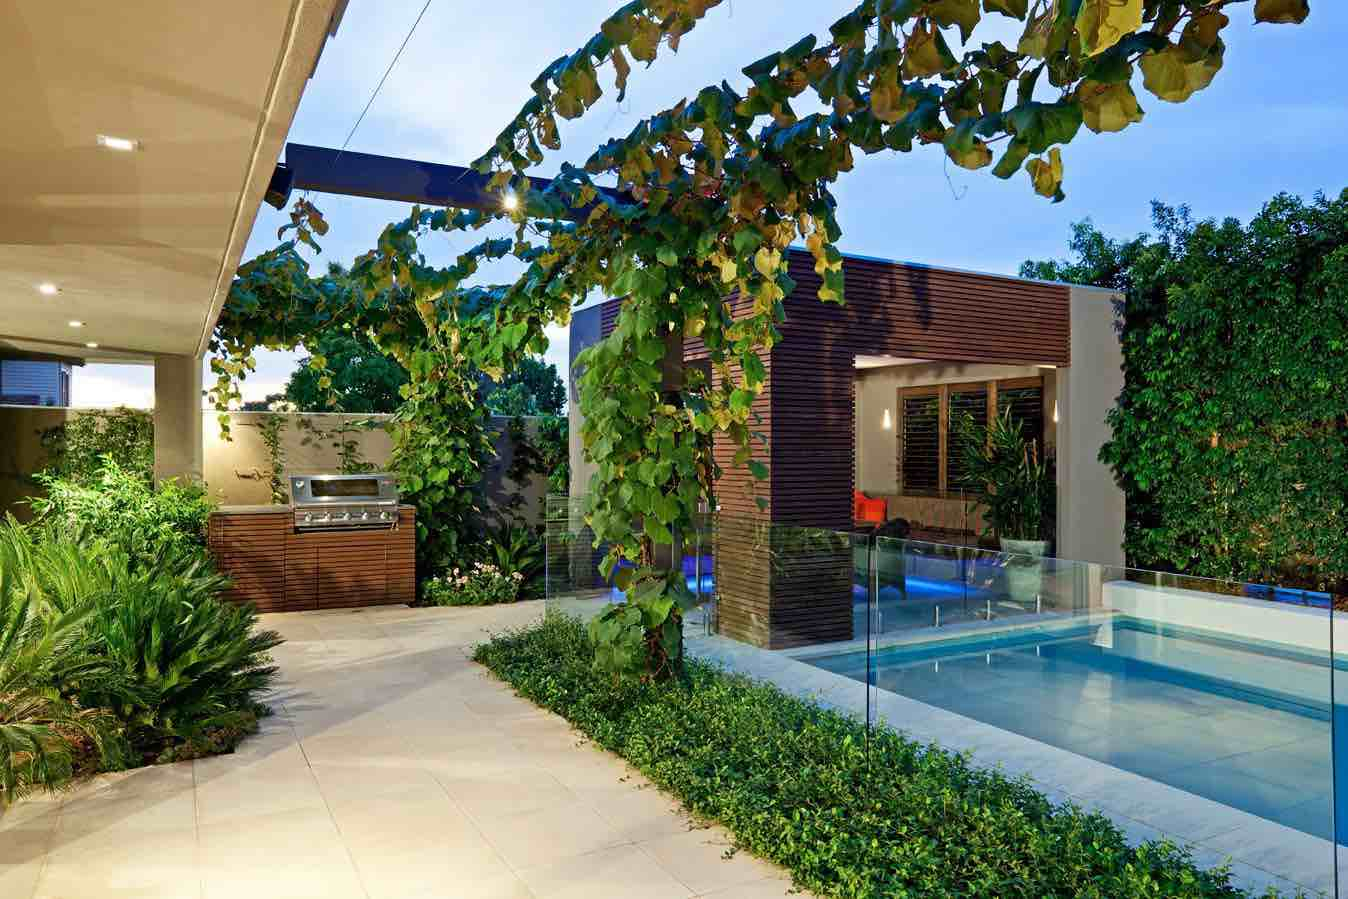 41 backyard design ideas for small yards worthminer for Small backyard ideas